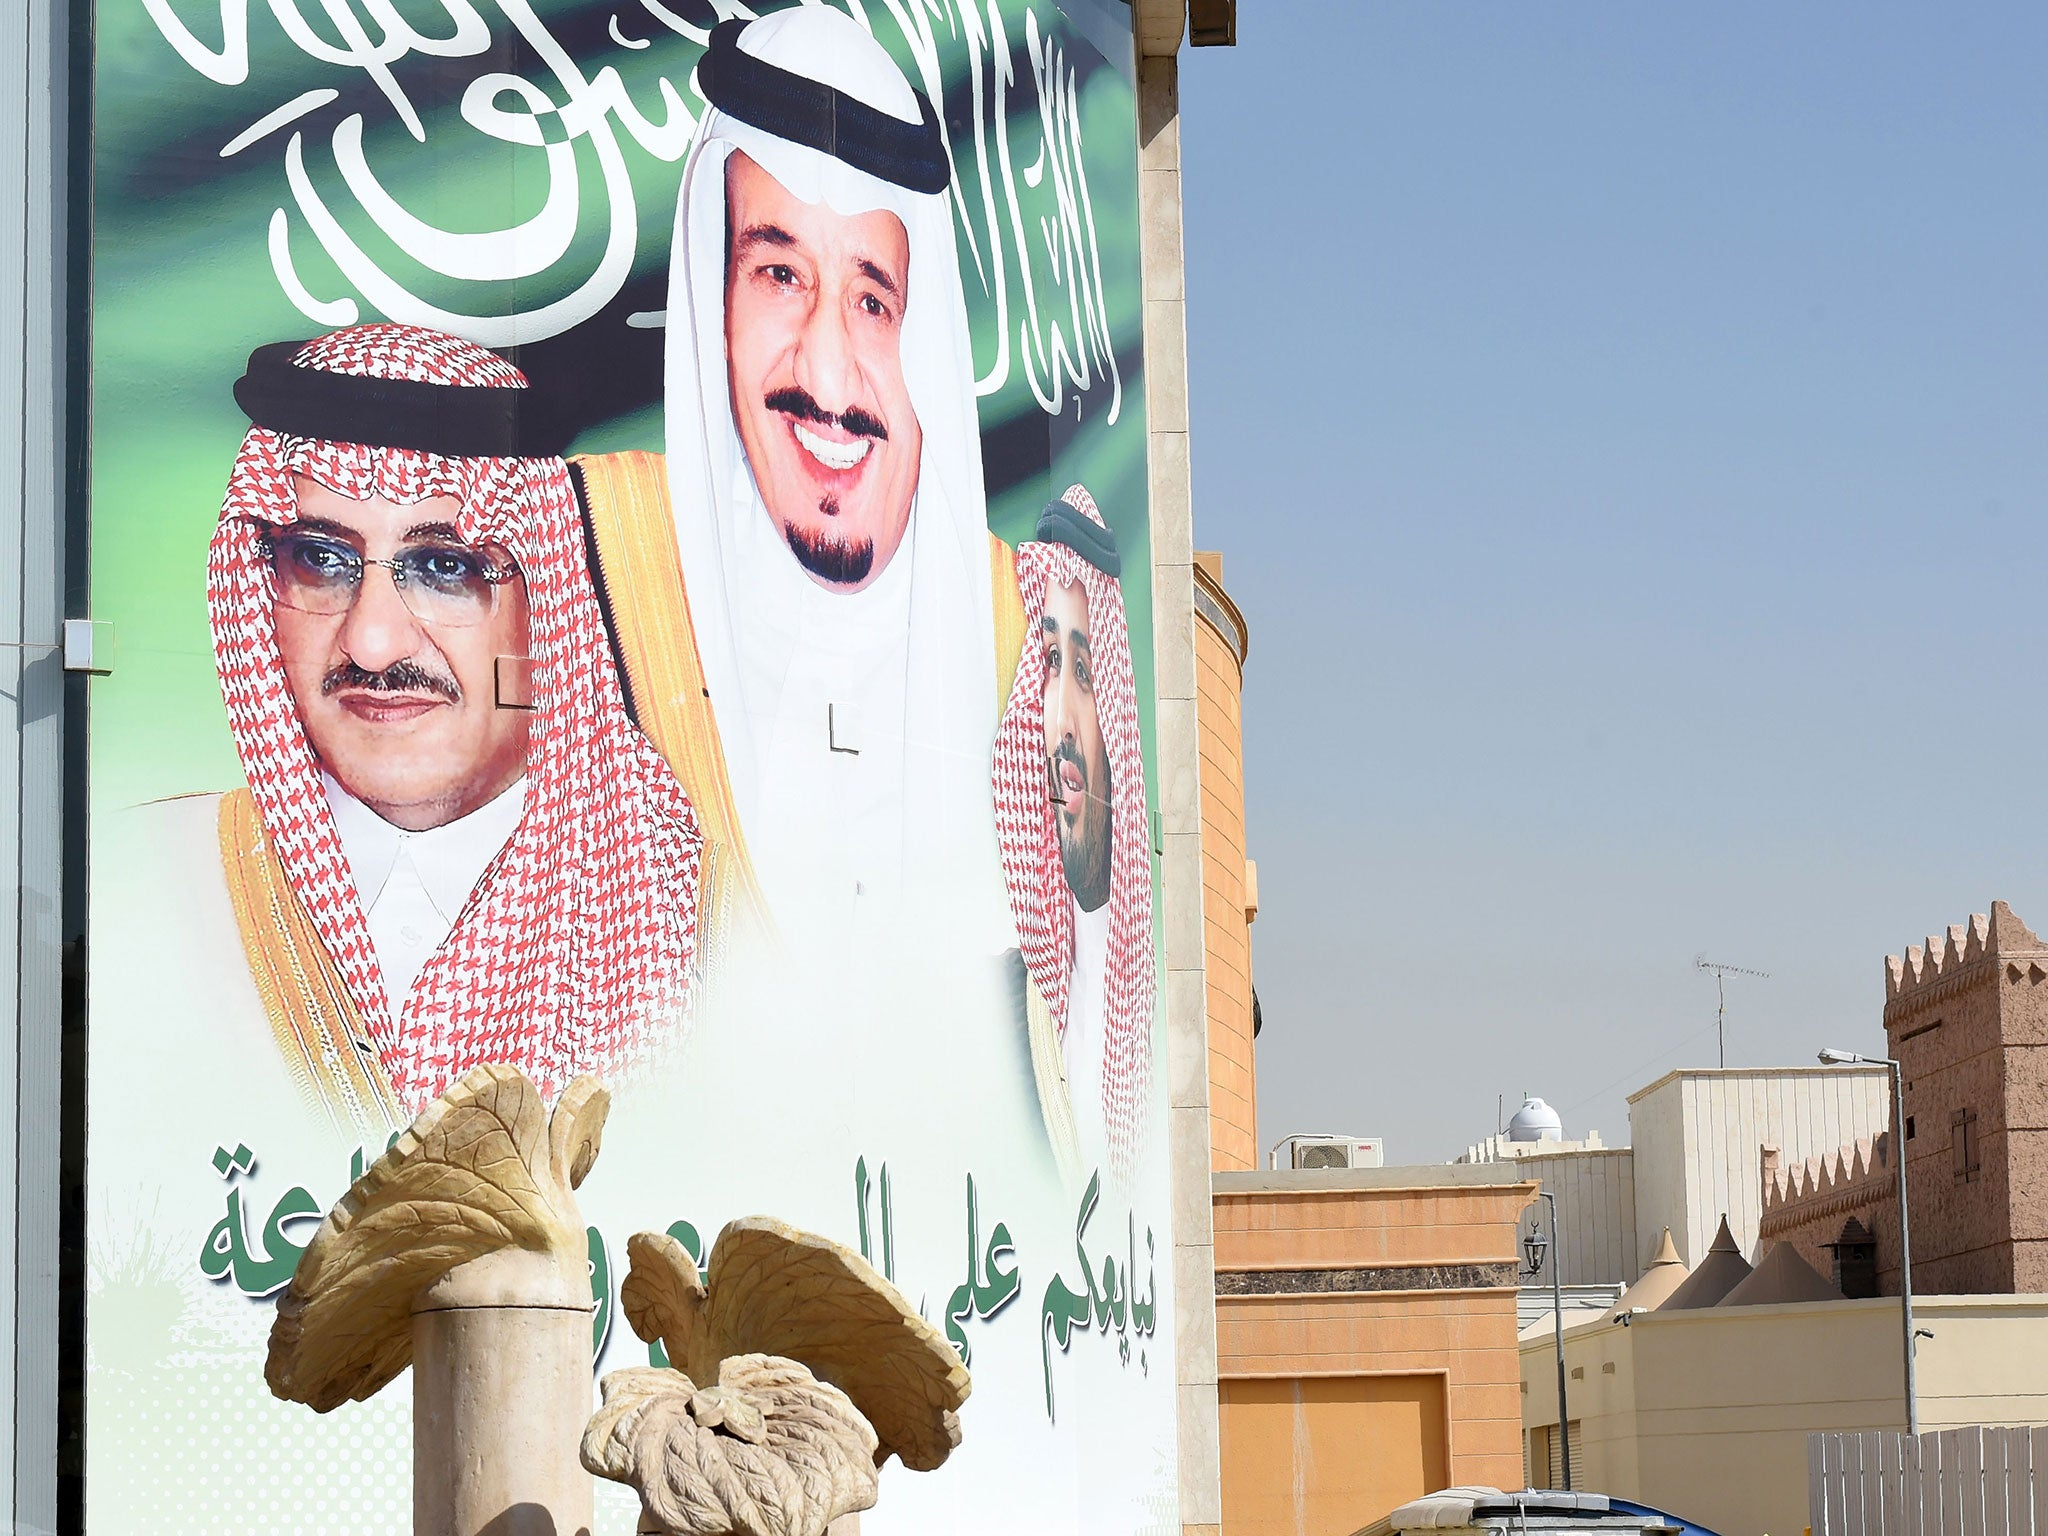 America may release documents suggesting Saudi Arabia was involved in 9/11